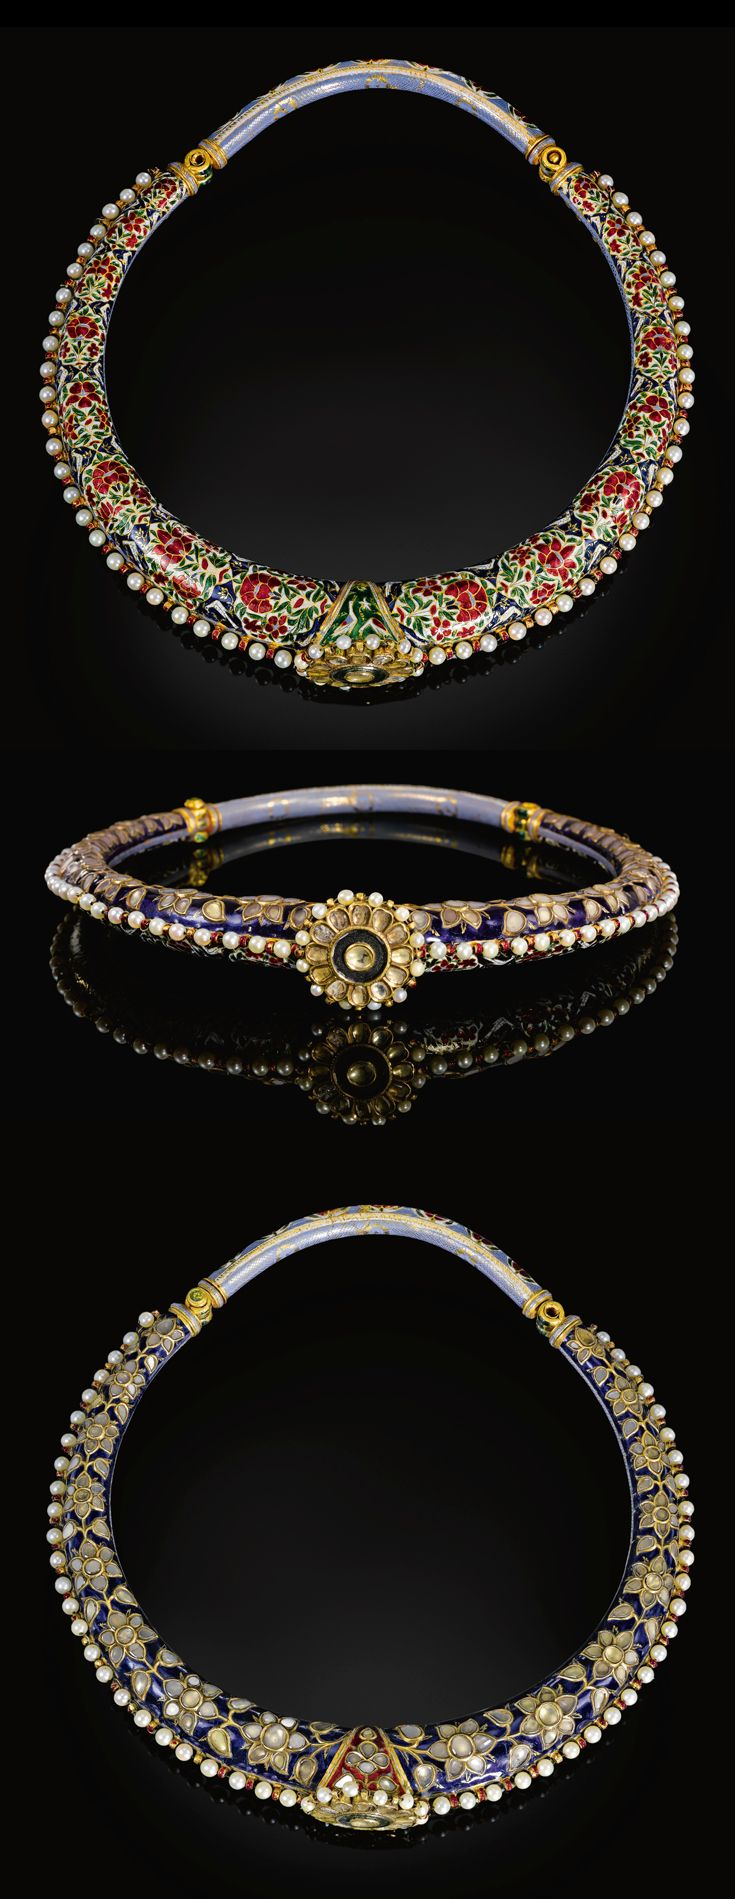 India ~ Jaipur | Enamelled and gem set torque (Hasli) | 19th century